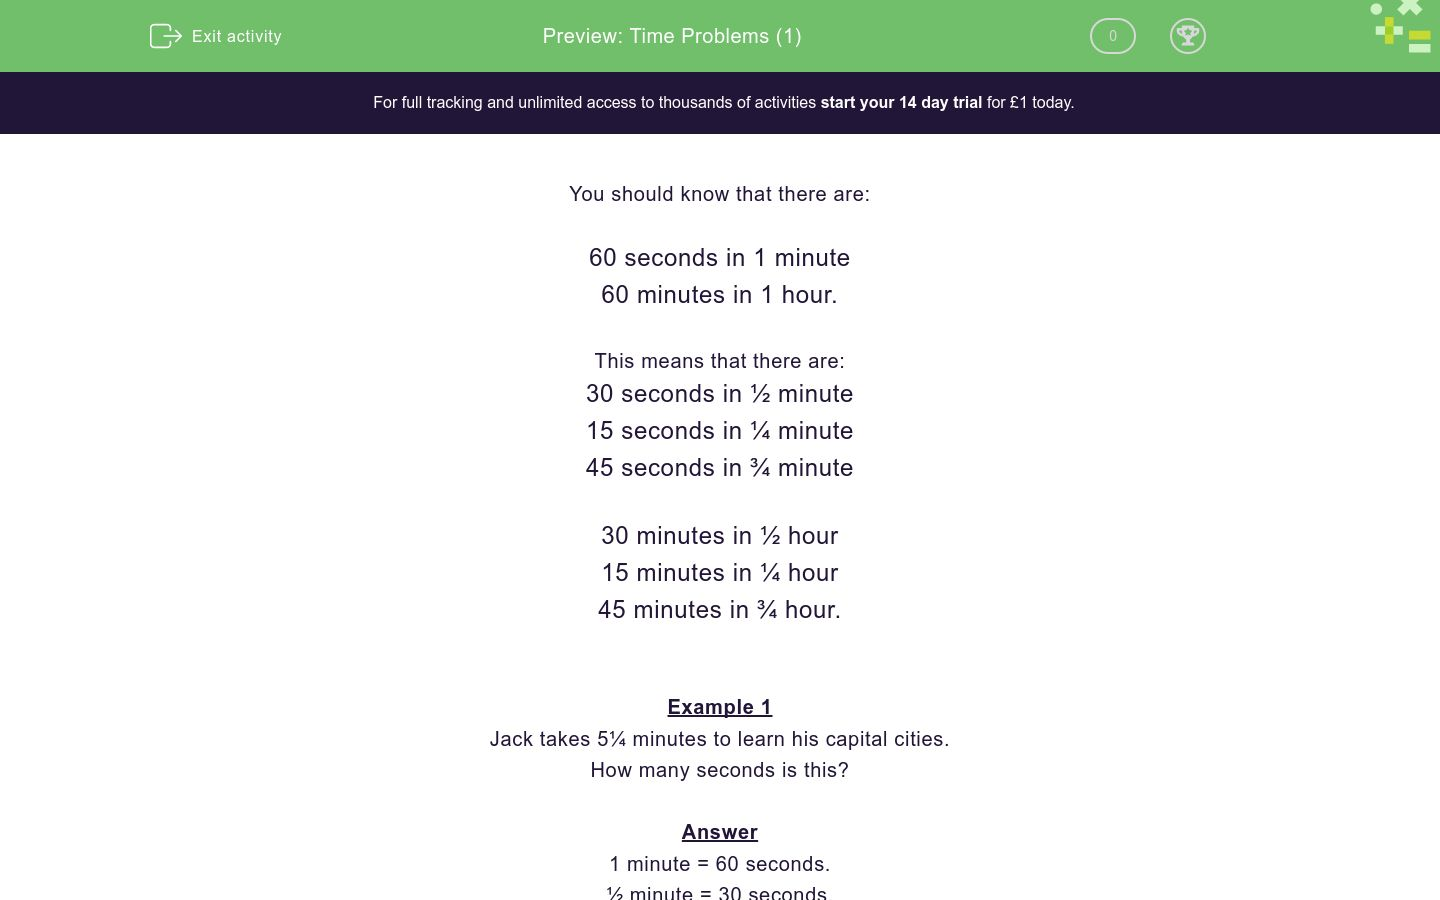 'Time Problems (1)' worksheet